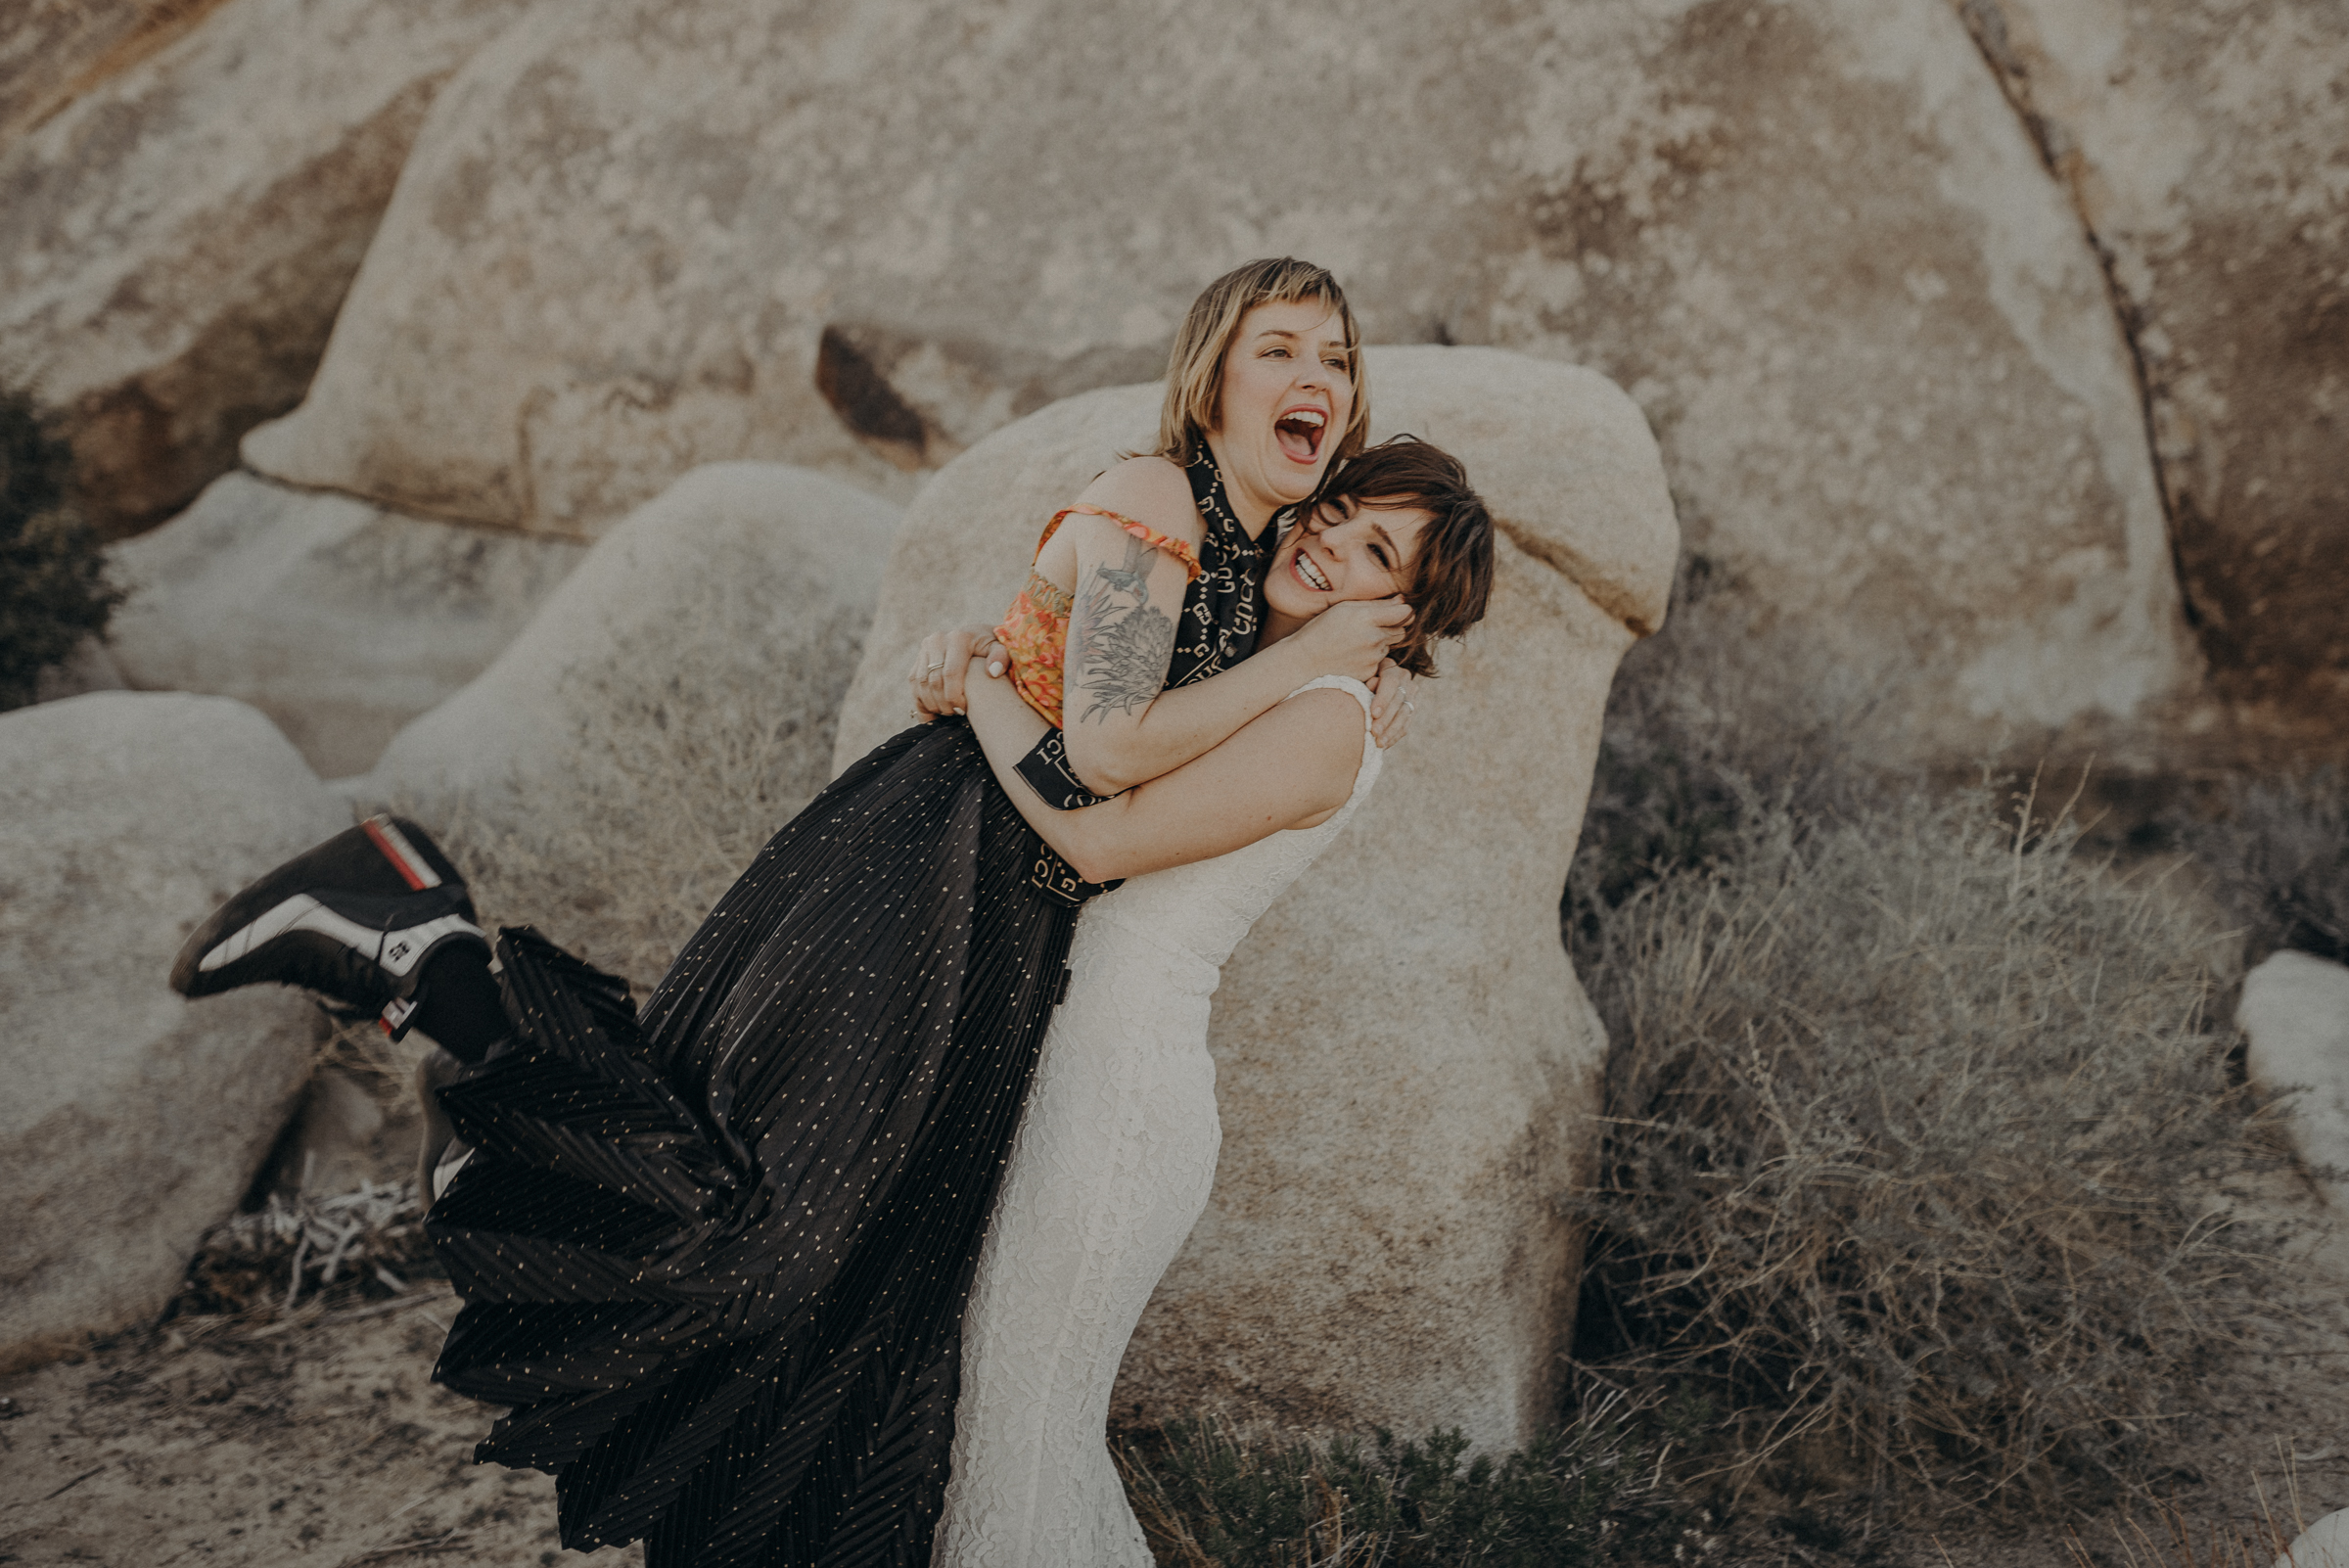 Joshua Tree Elopement - Los Angeles Wedding Photographers - IsaiahAndTaylor.com-052.jpg